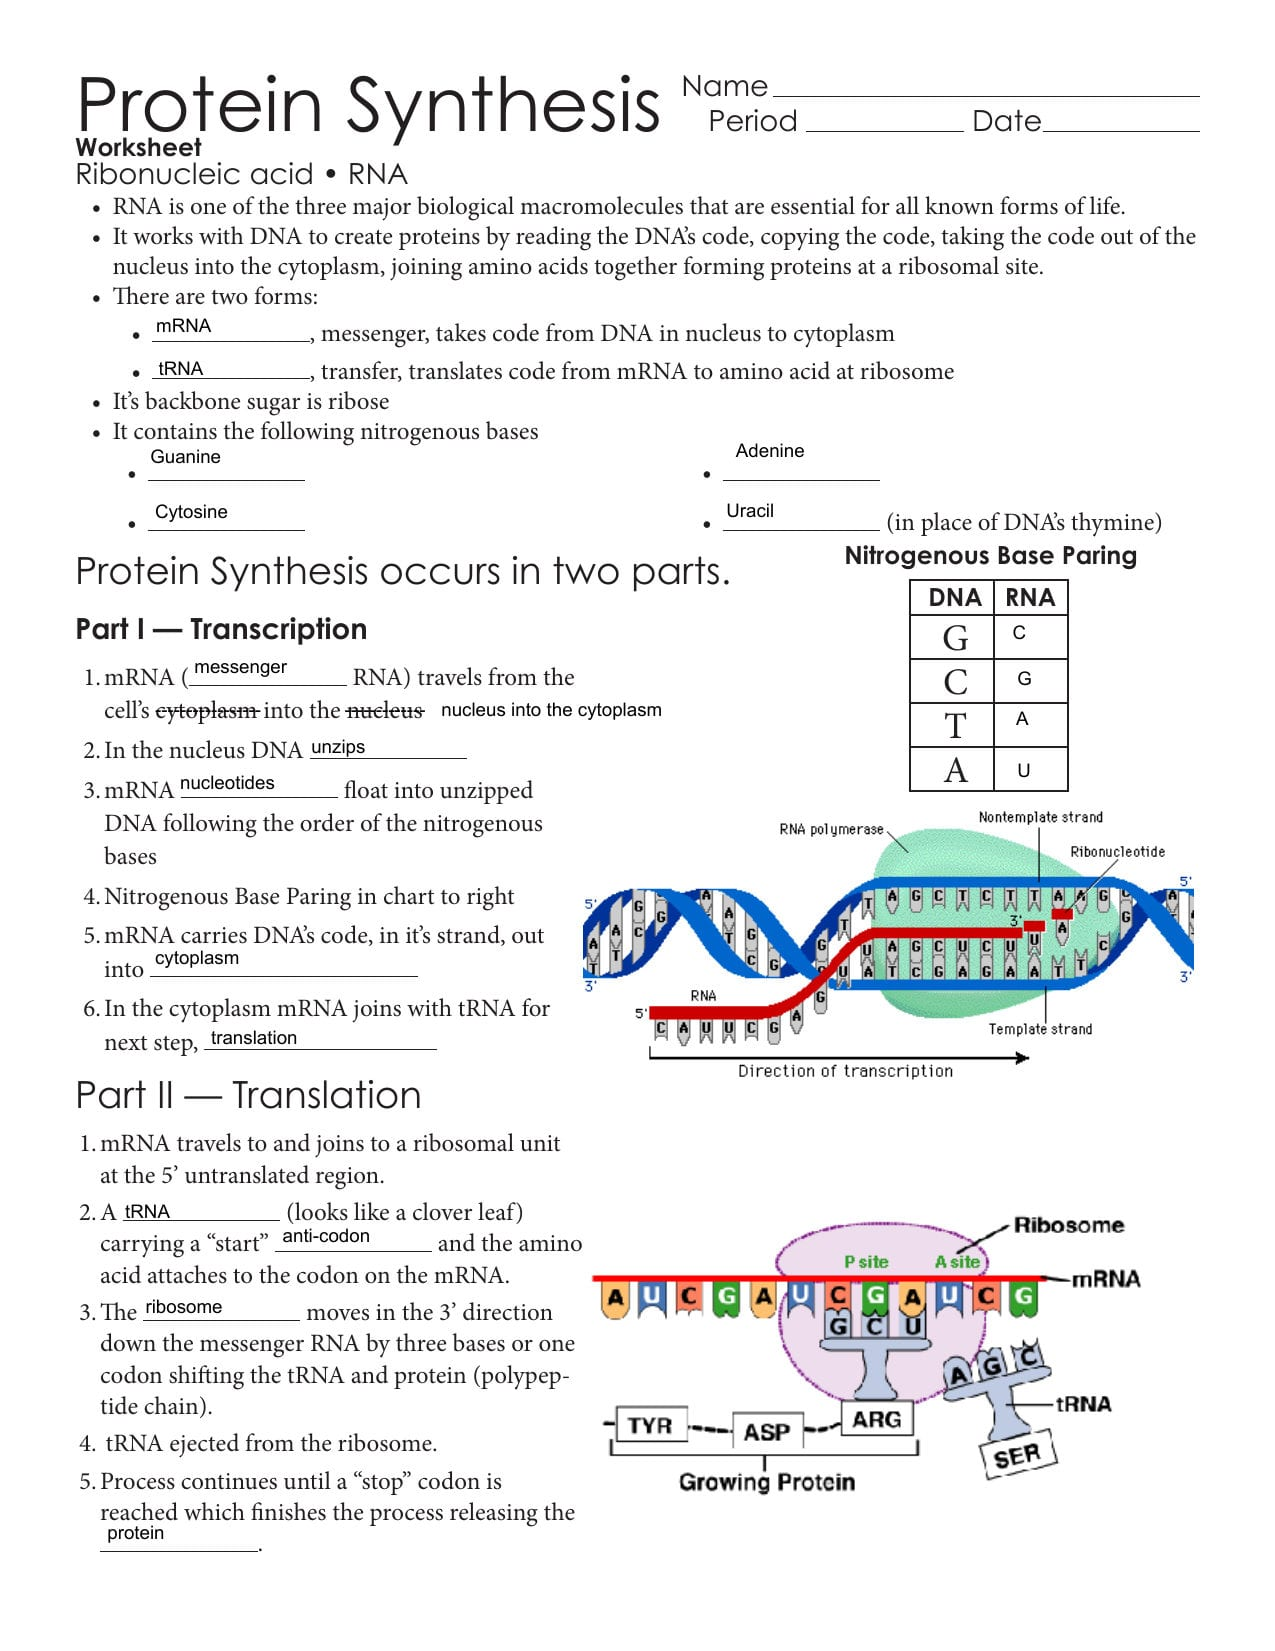 Protein Synthesis Issaquah Connect Also Dna To Rna To